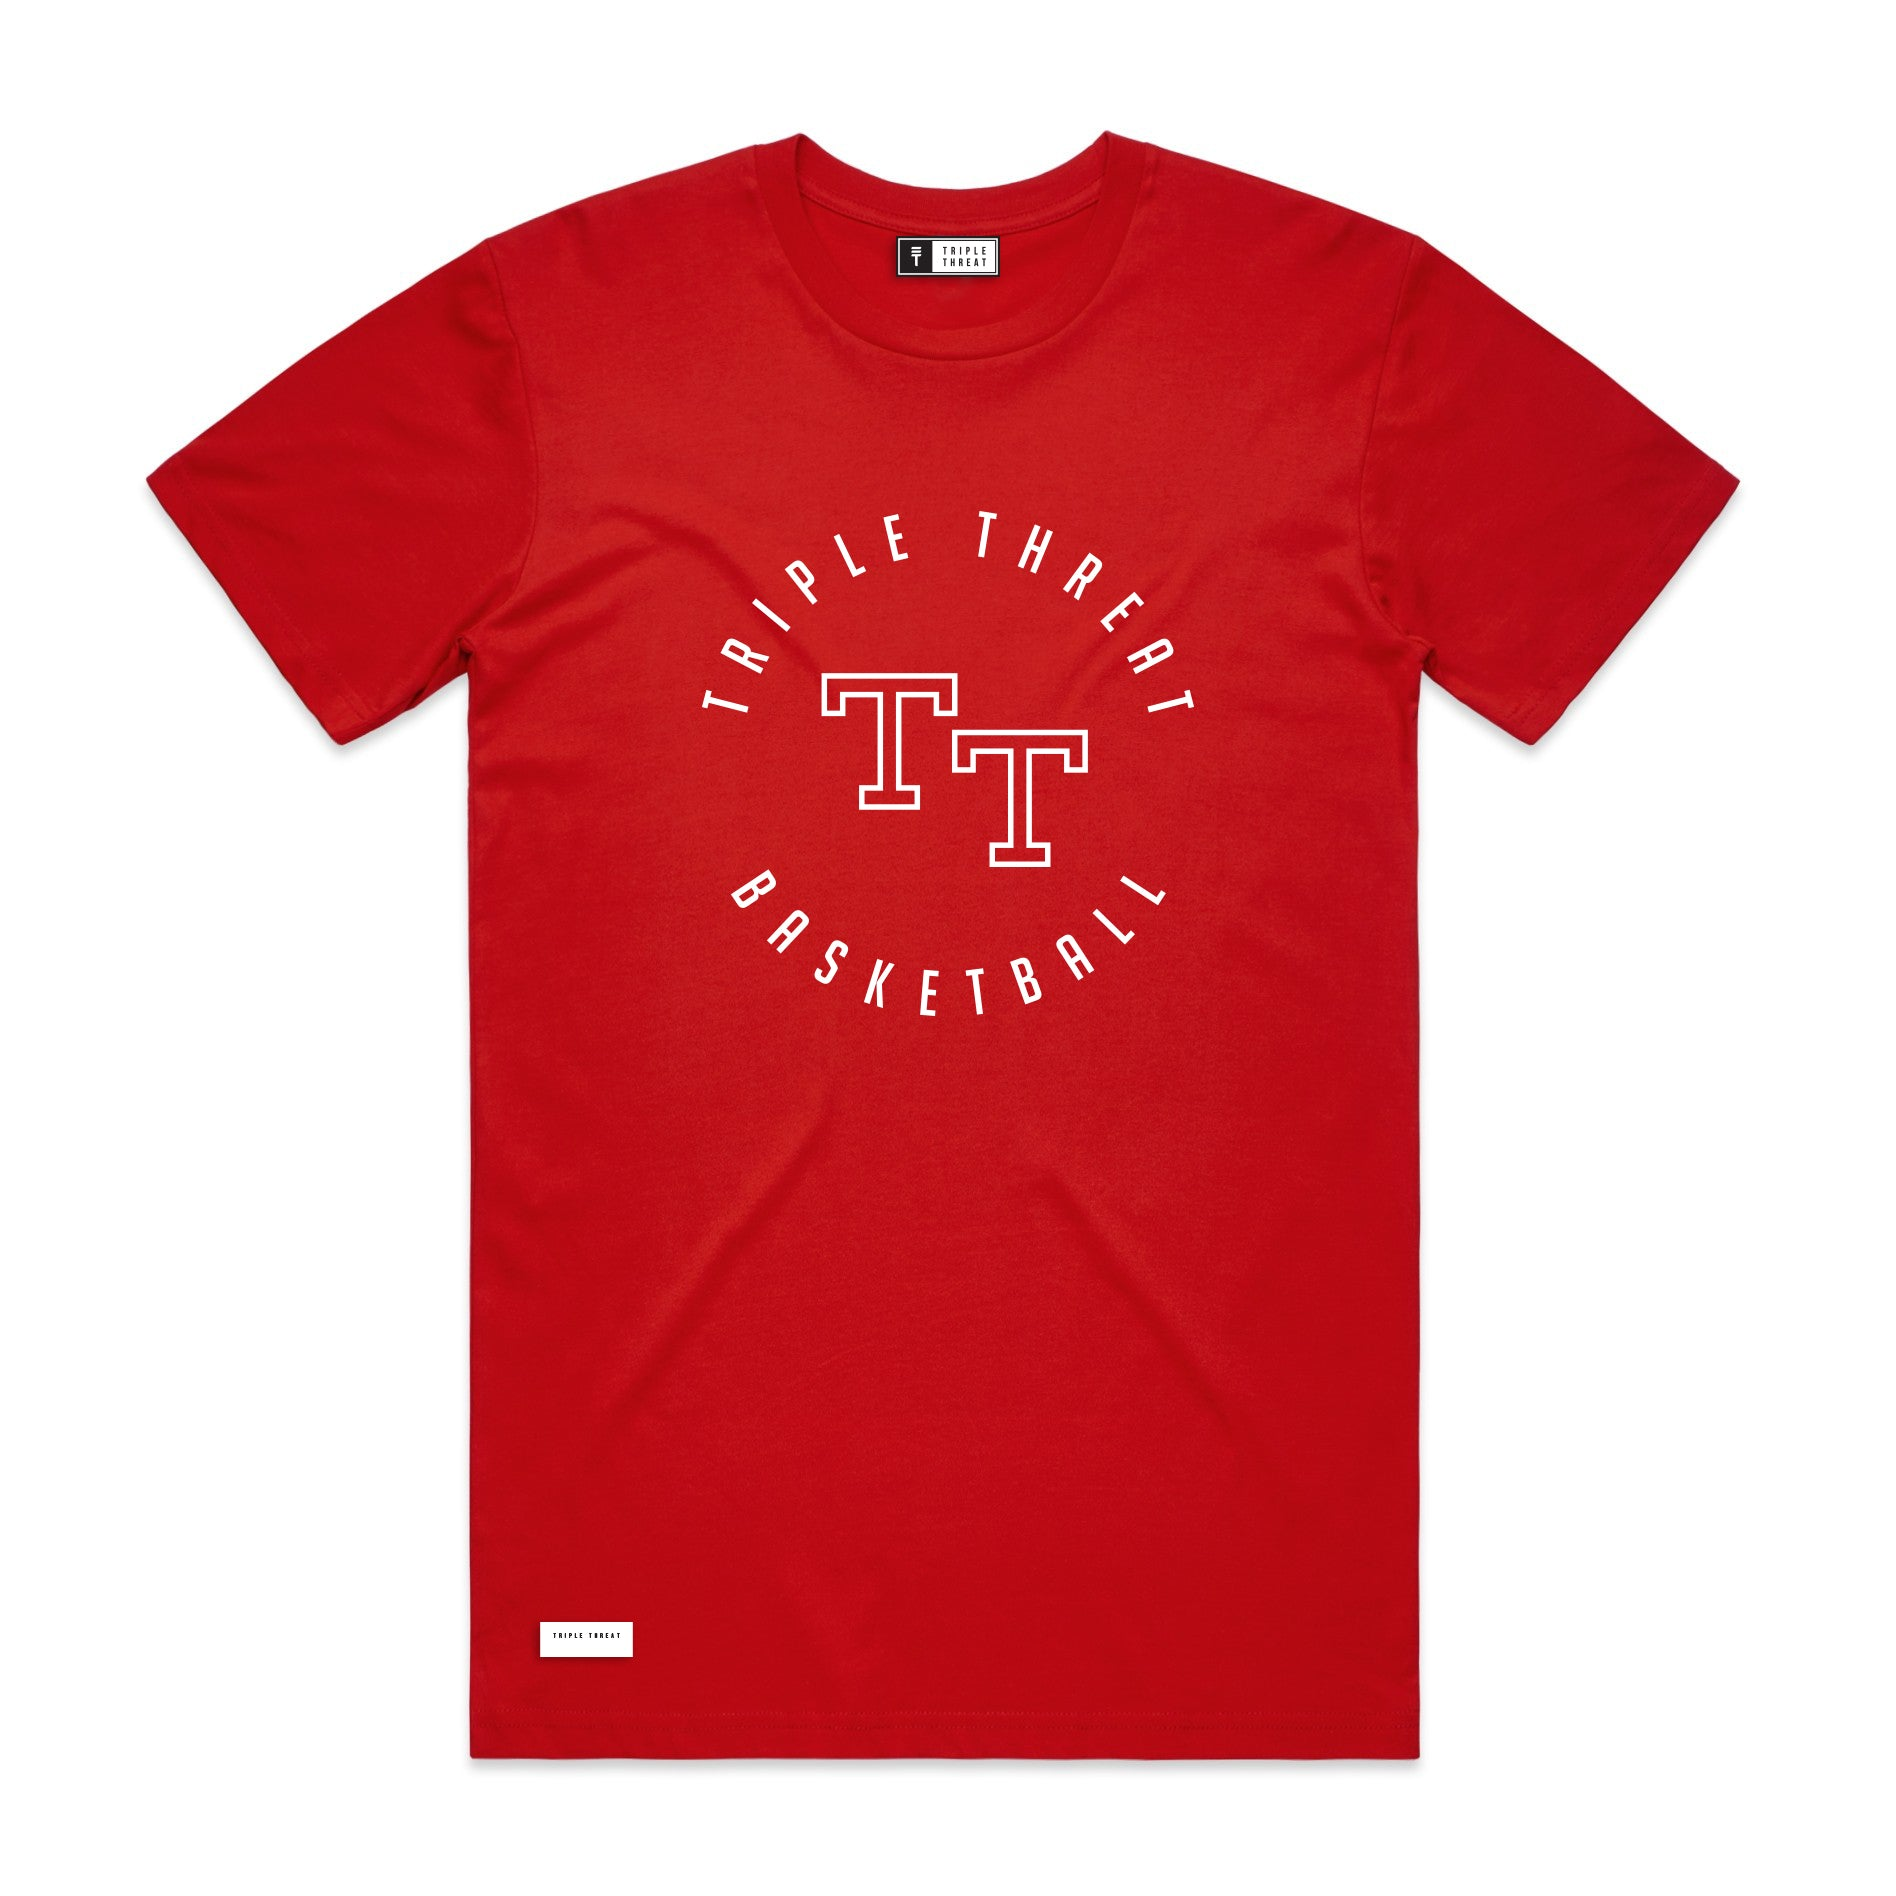 ROUND LOGO T-SHIRT - RED